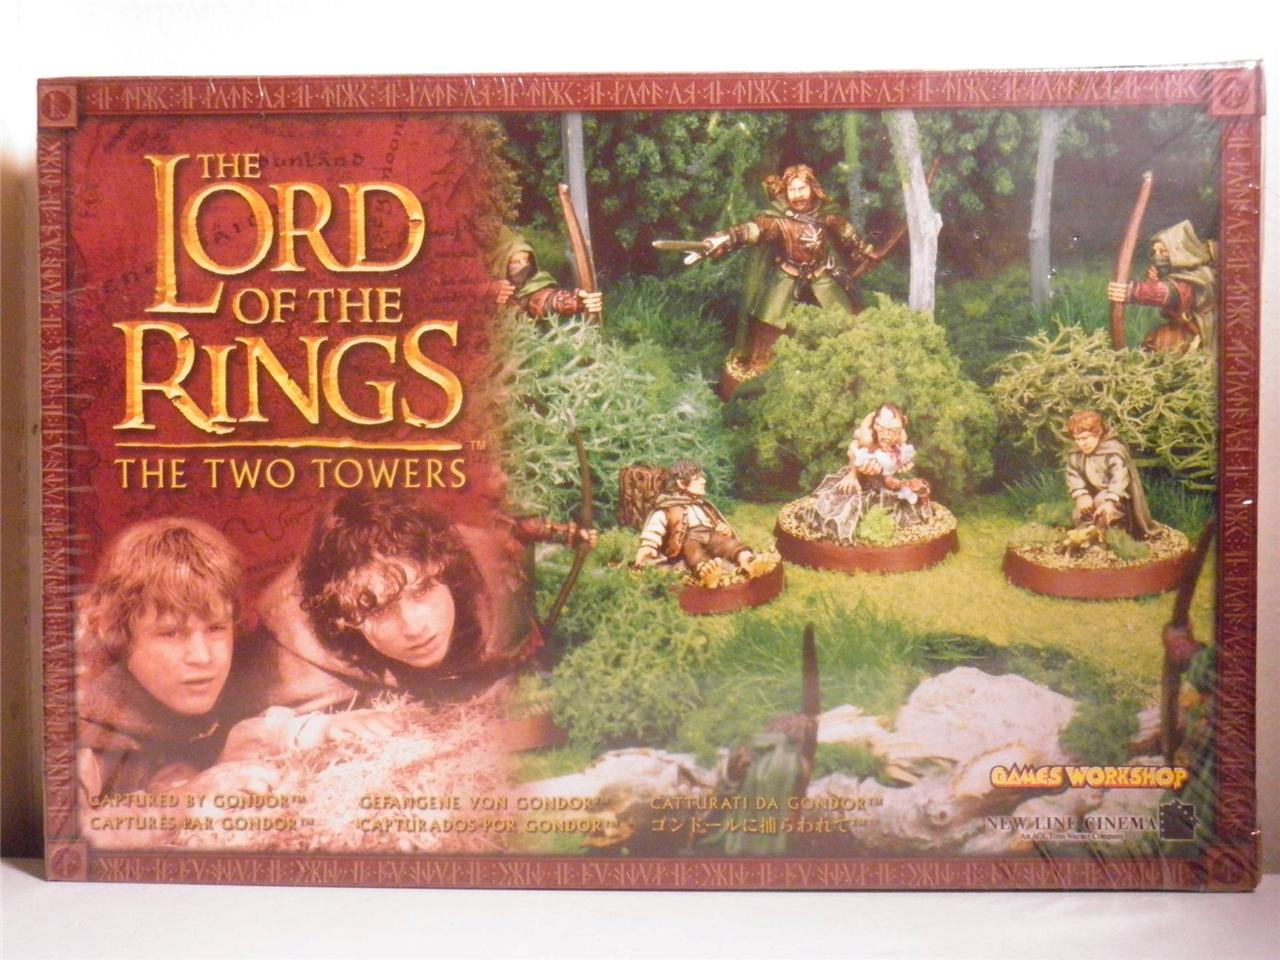 Captured-by-Gondor-box-set-NEW-Not-Sealed-metal-models-LOTR-The-Hobbit-OOP